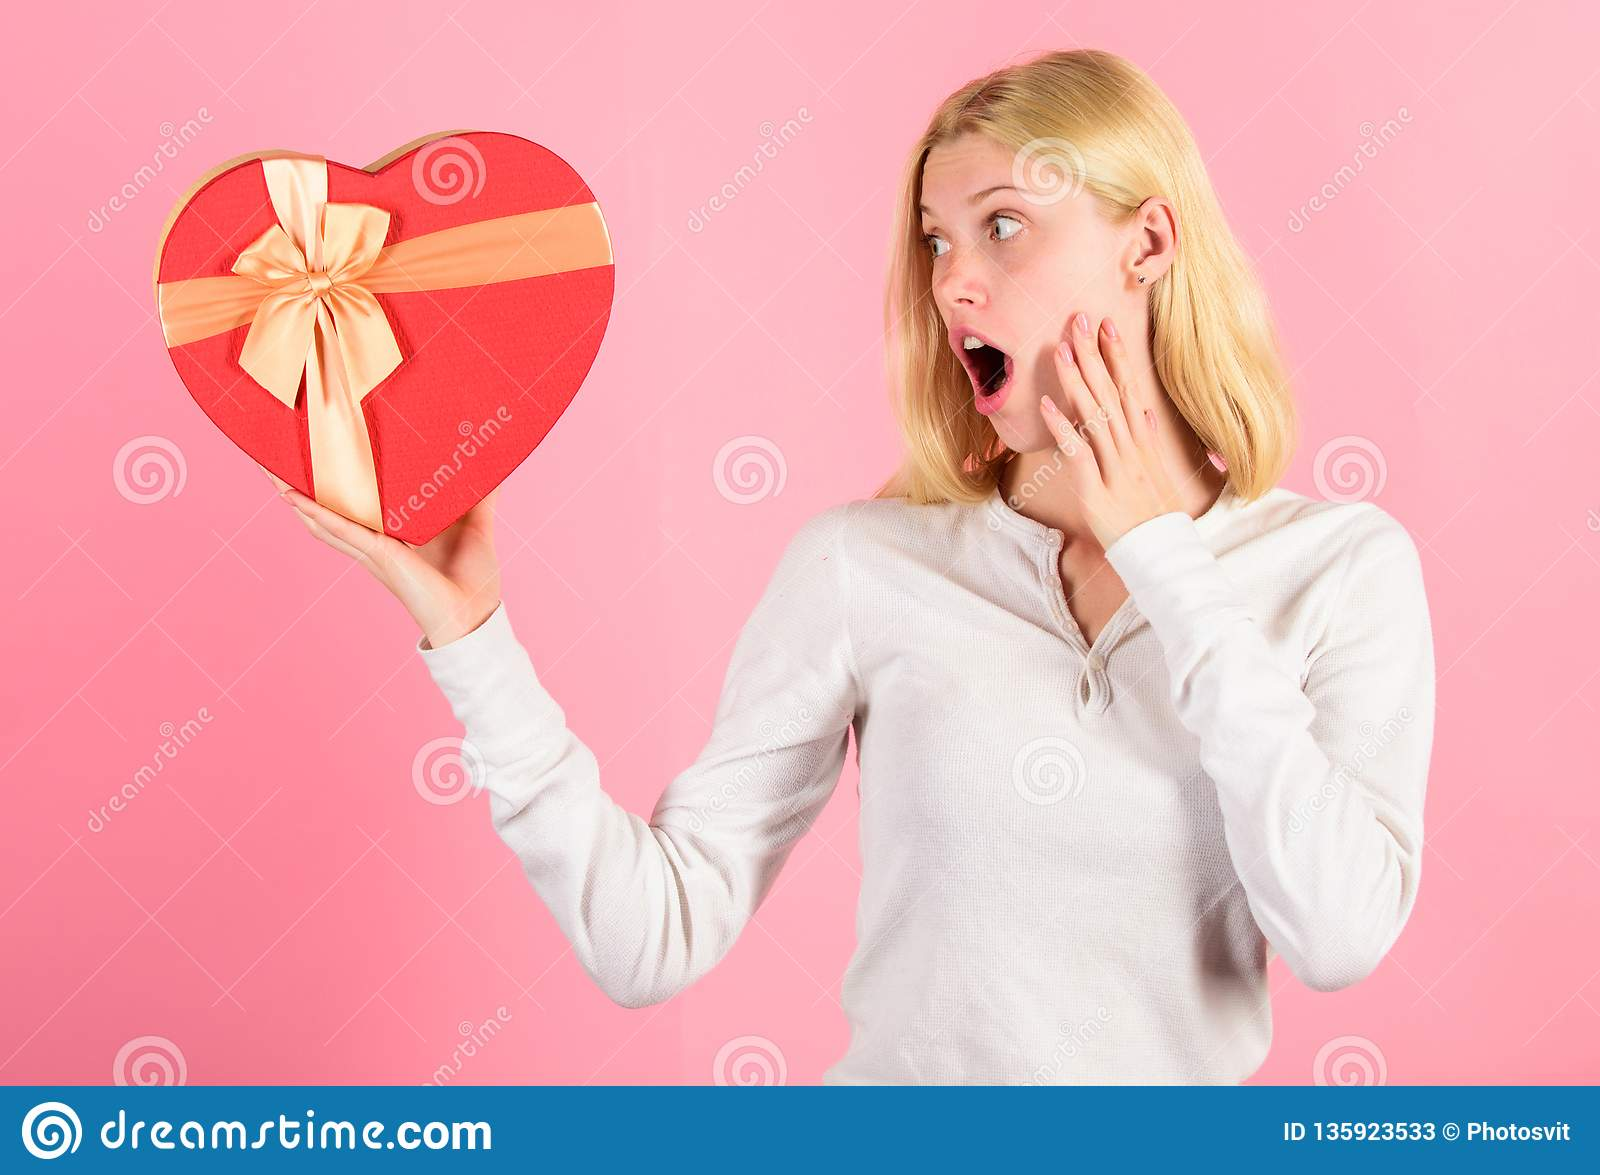 Every Girl Would Love On Valentines Day Romantic Surprise Gift For